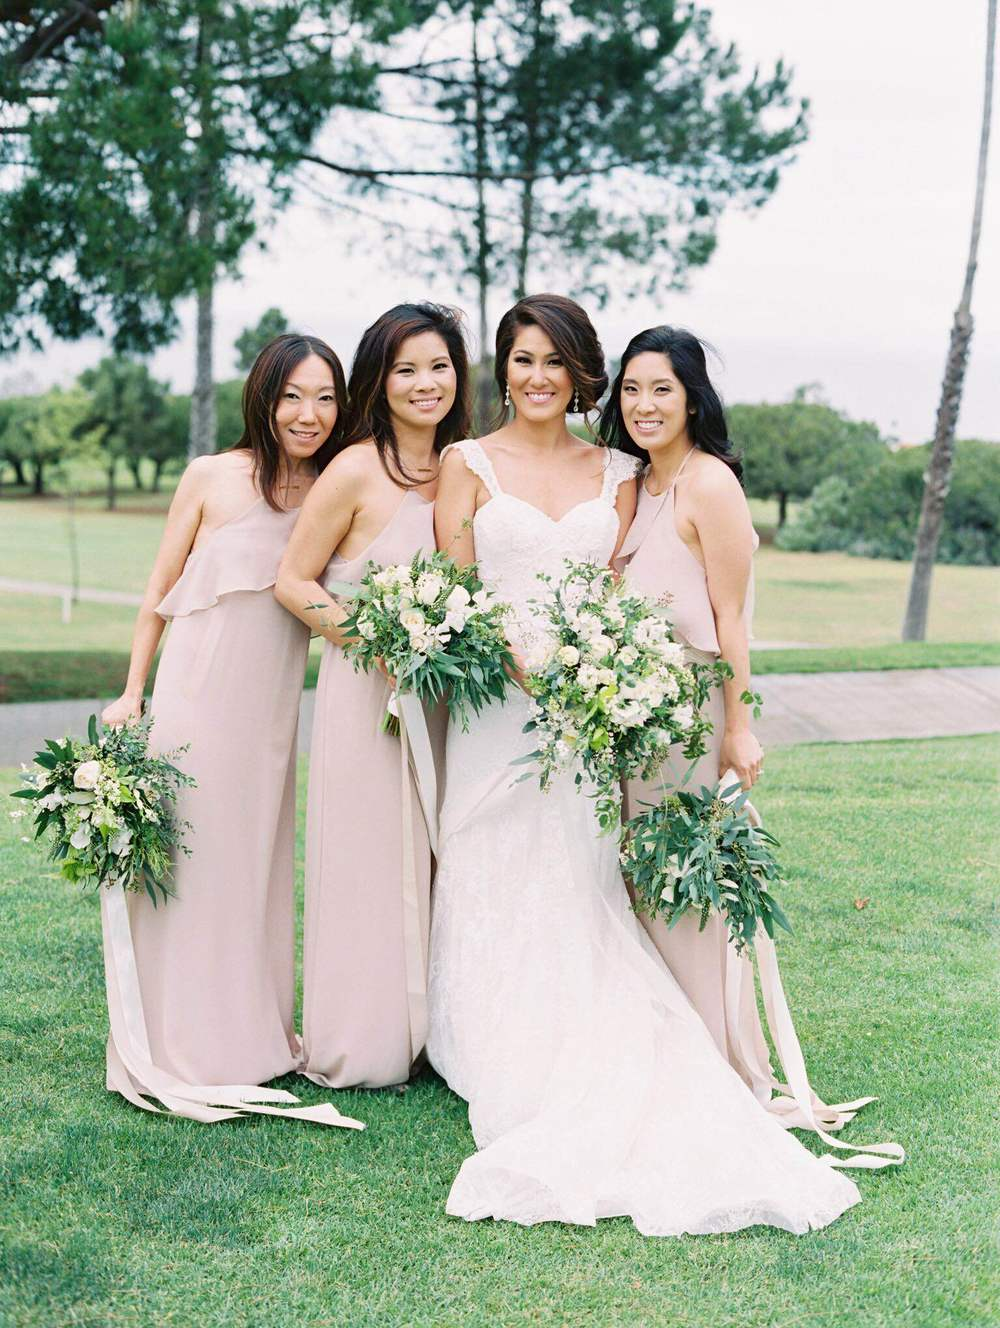 los verdes golf club wedding 5.JPG